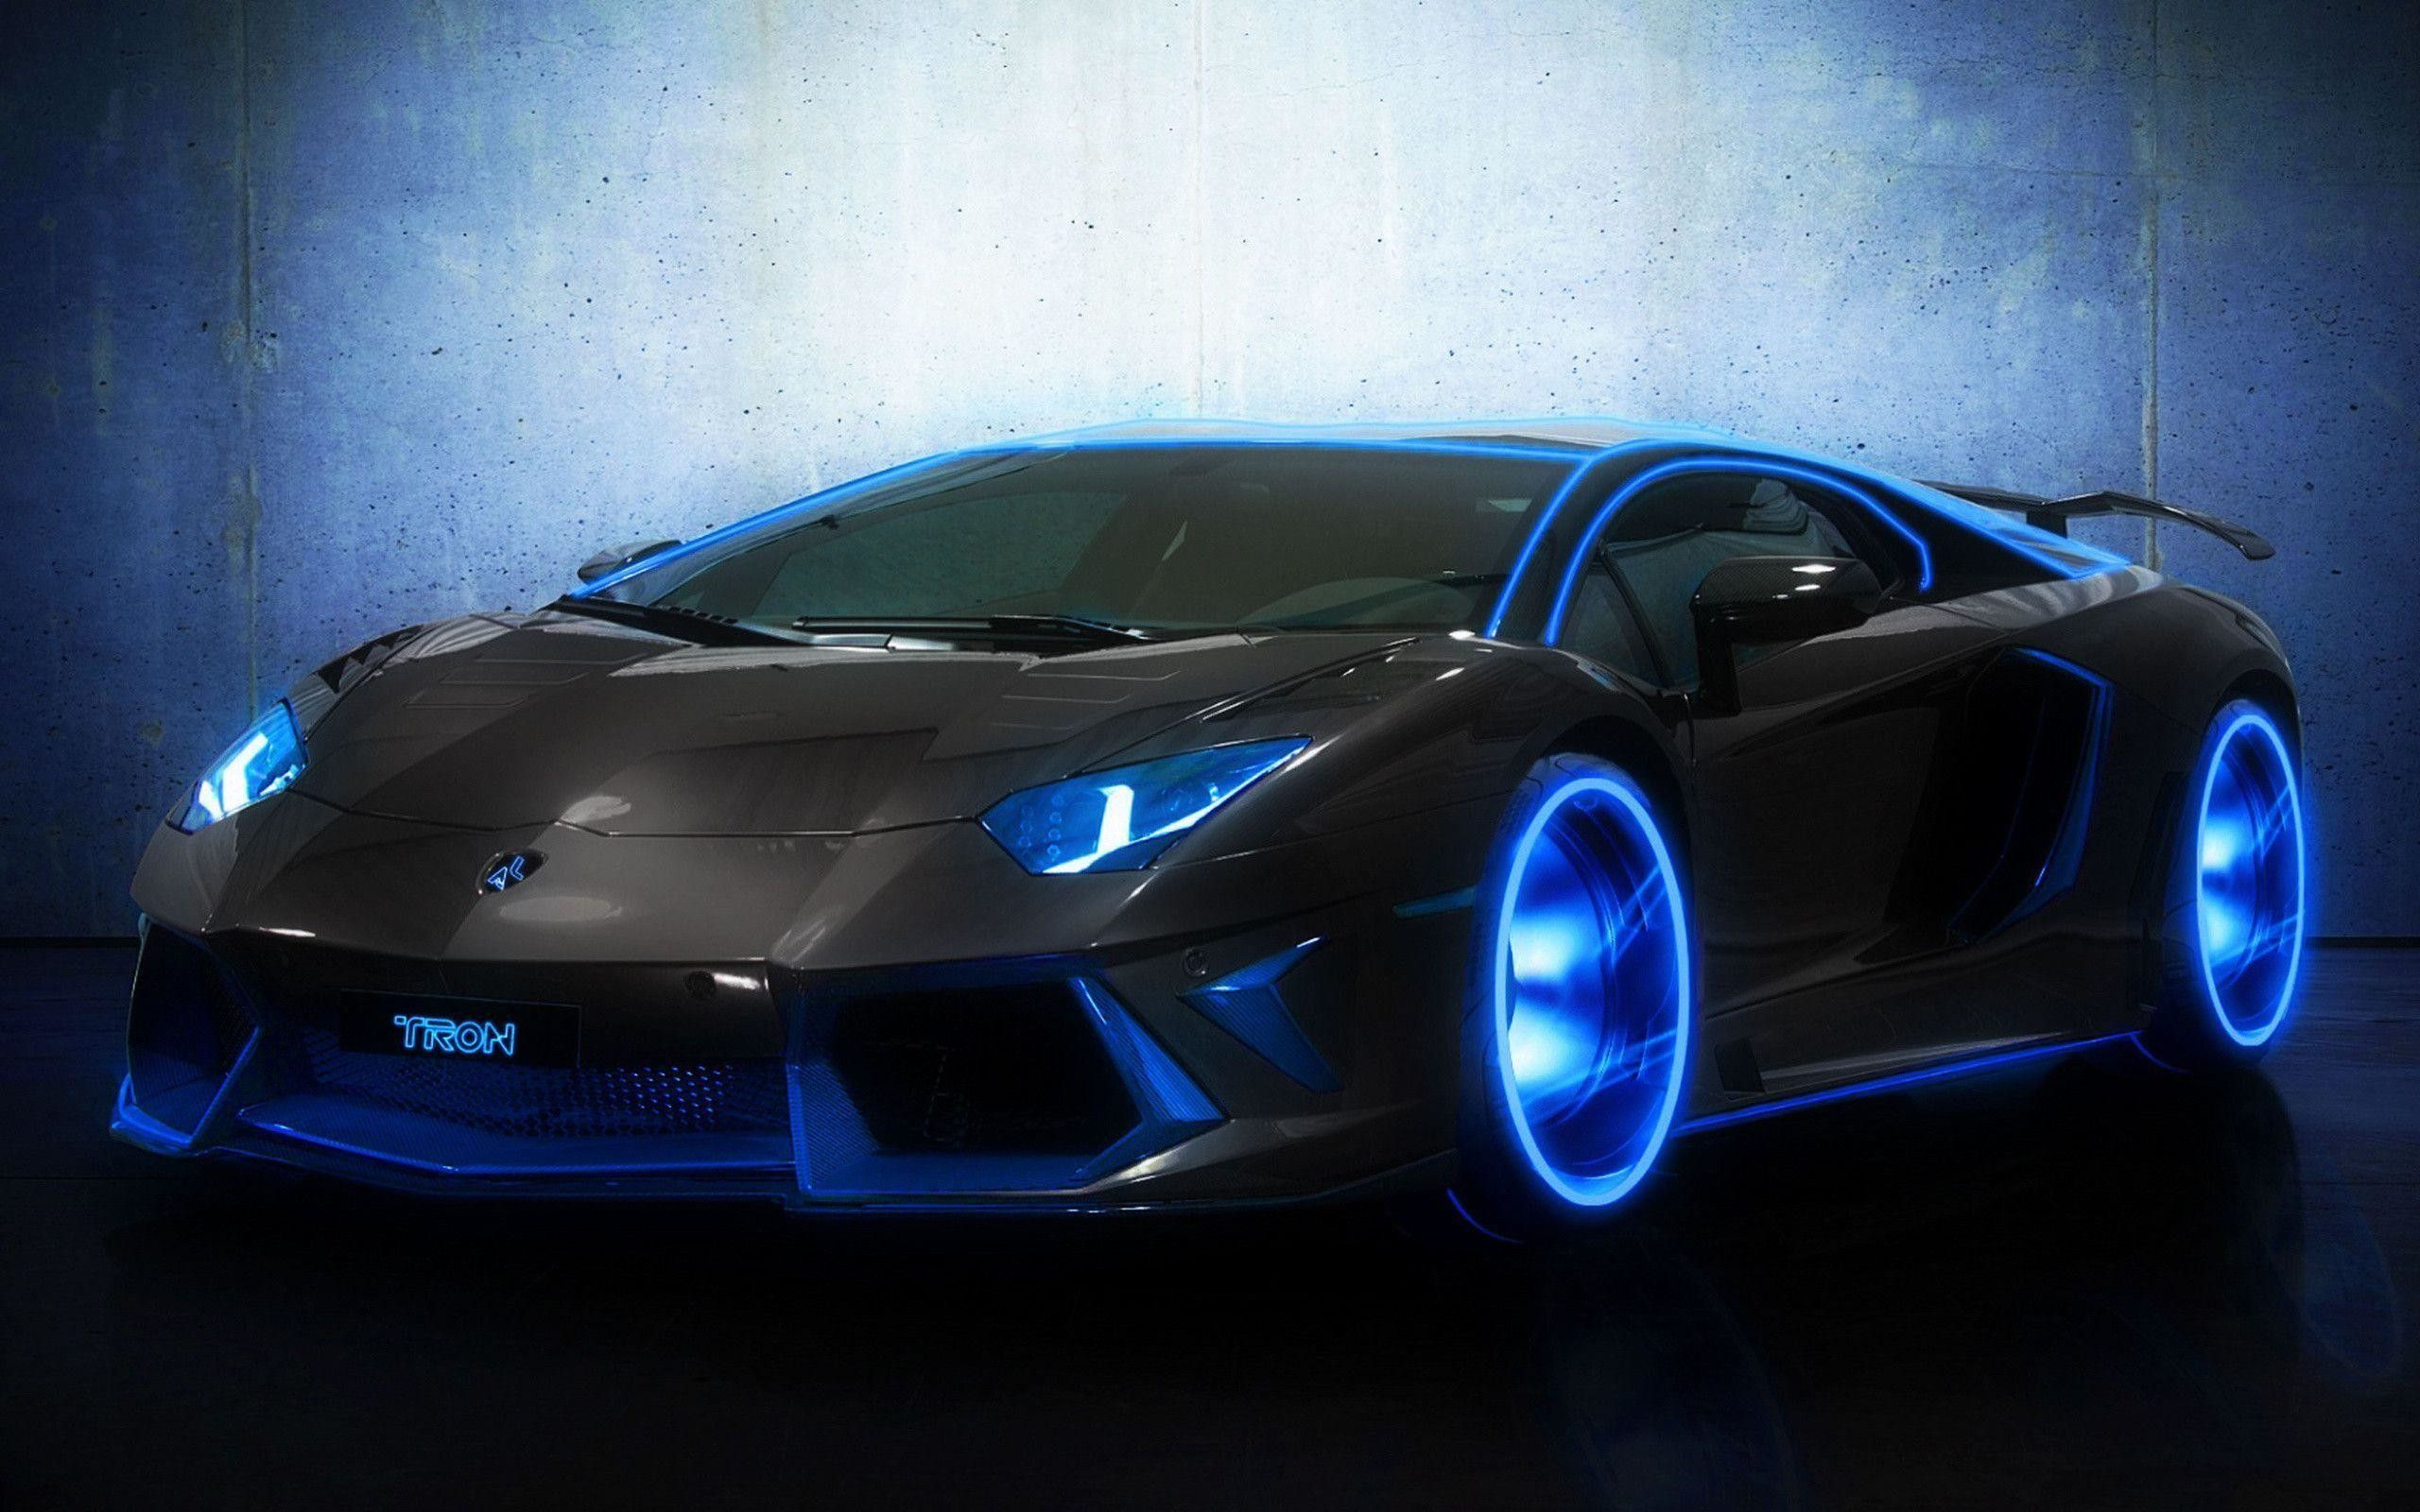 Blue Car Wallpapers Top Free Blue Car Backgrounds Wallpaperaccess